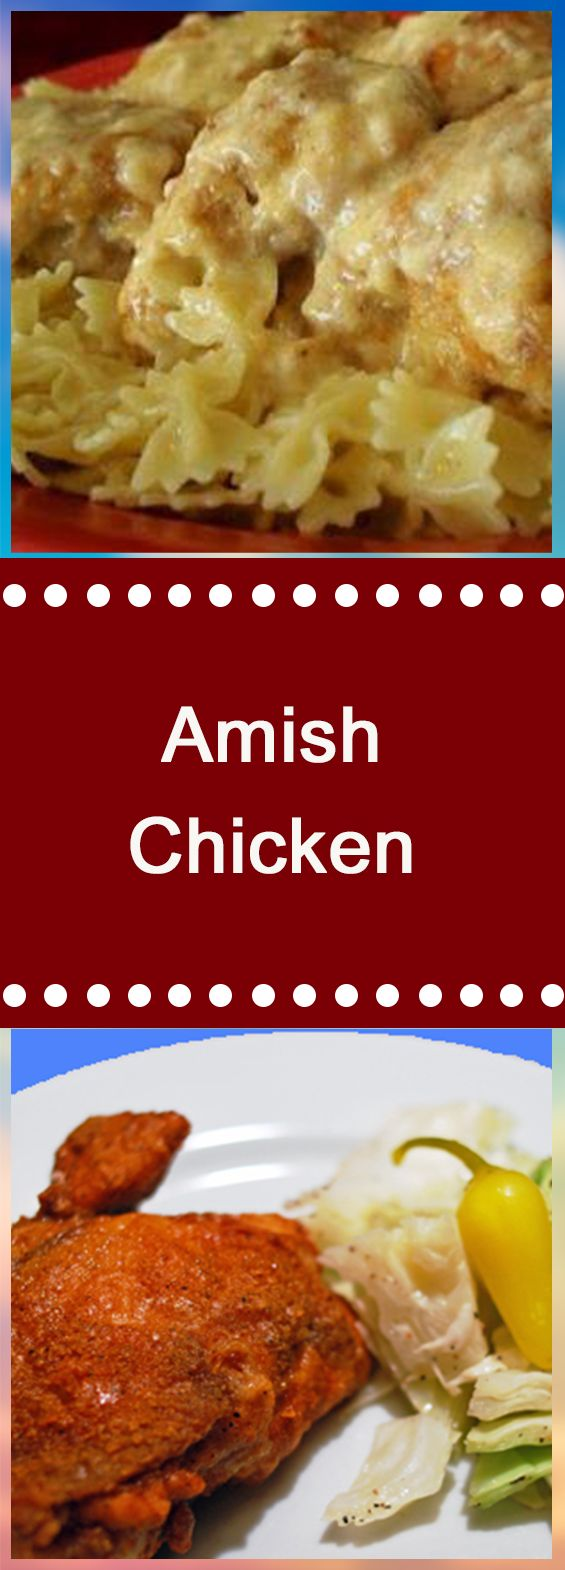 Amish Chicken #weightlossrecipes #chicken #chickendinner #glutenfreerecipes #chickens #chickenrecipes